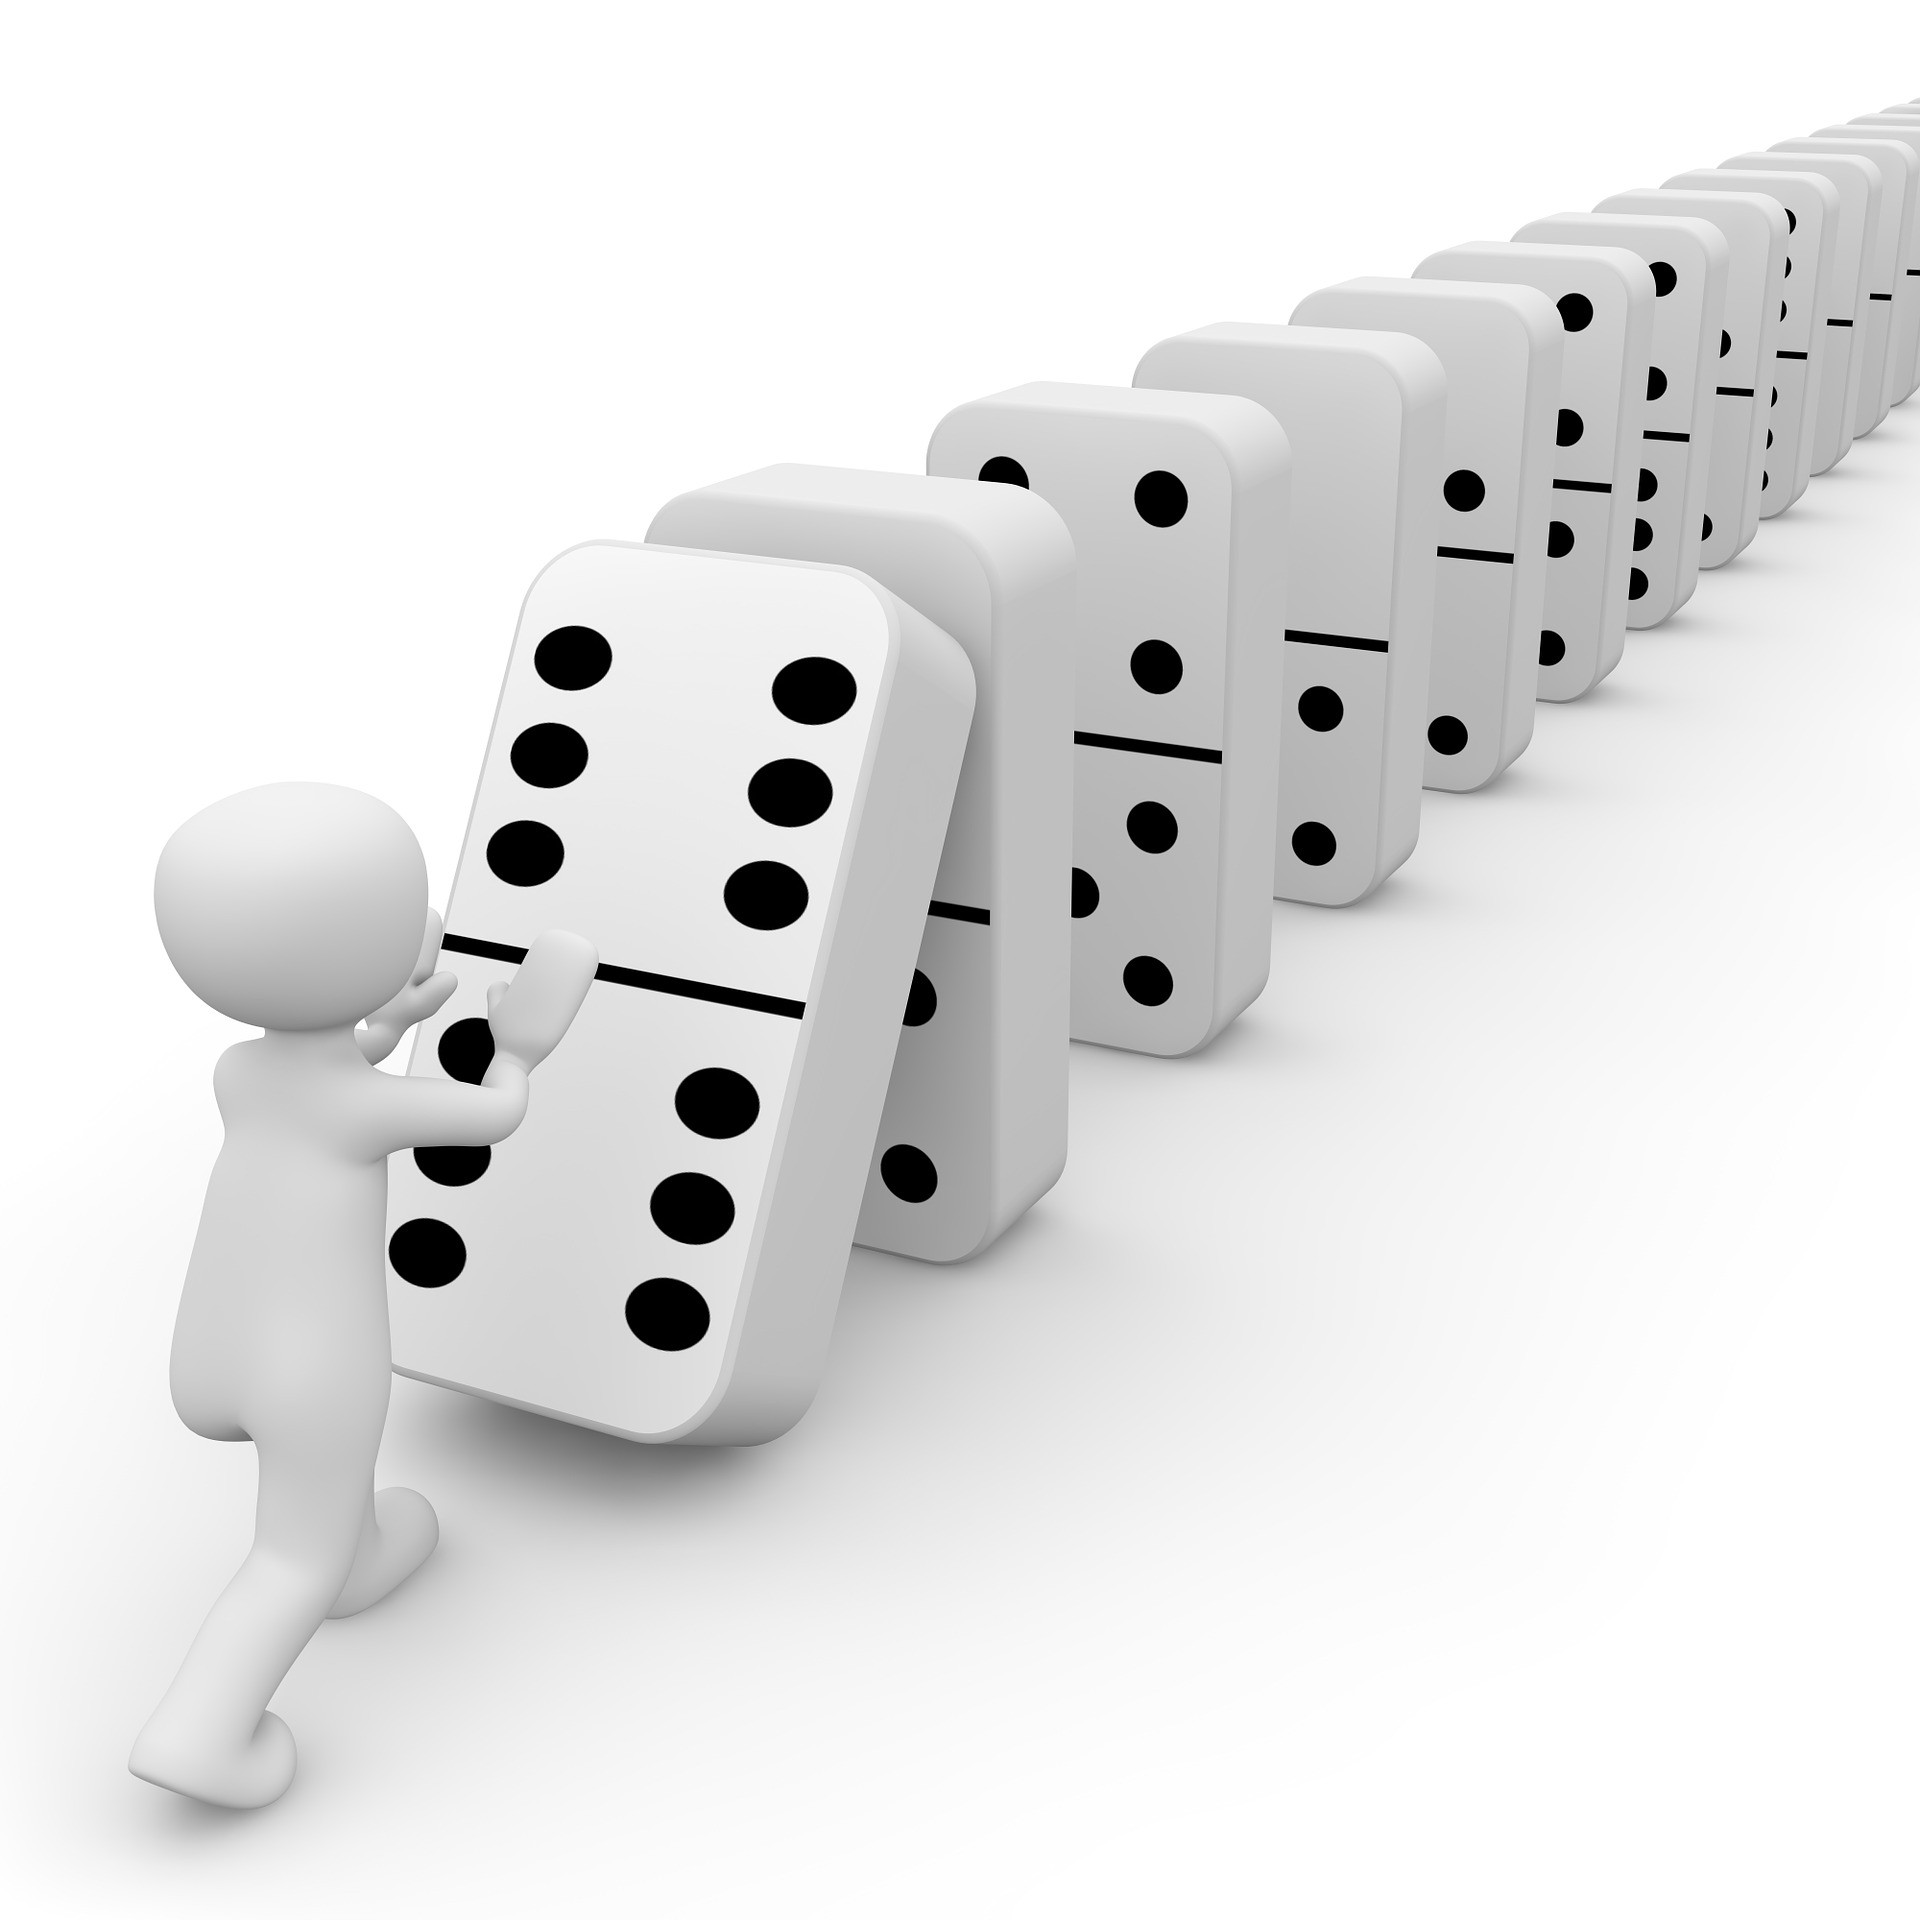 The Domino Effect Physics Can be Pretty Incredible | by AJP info | Medium